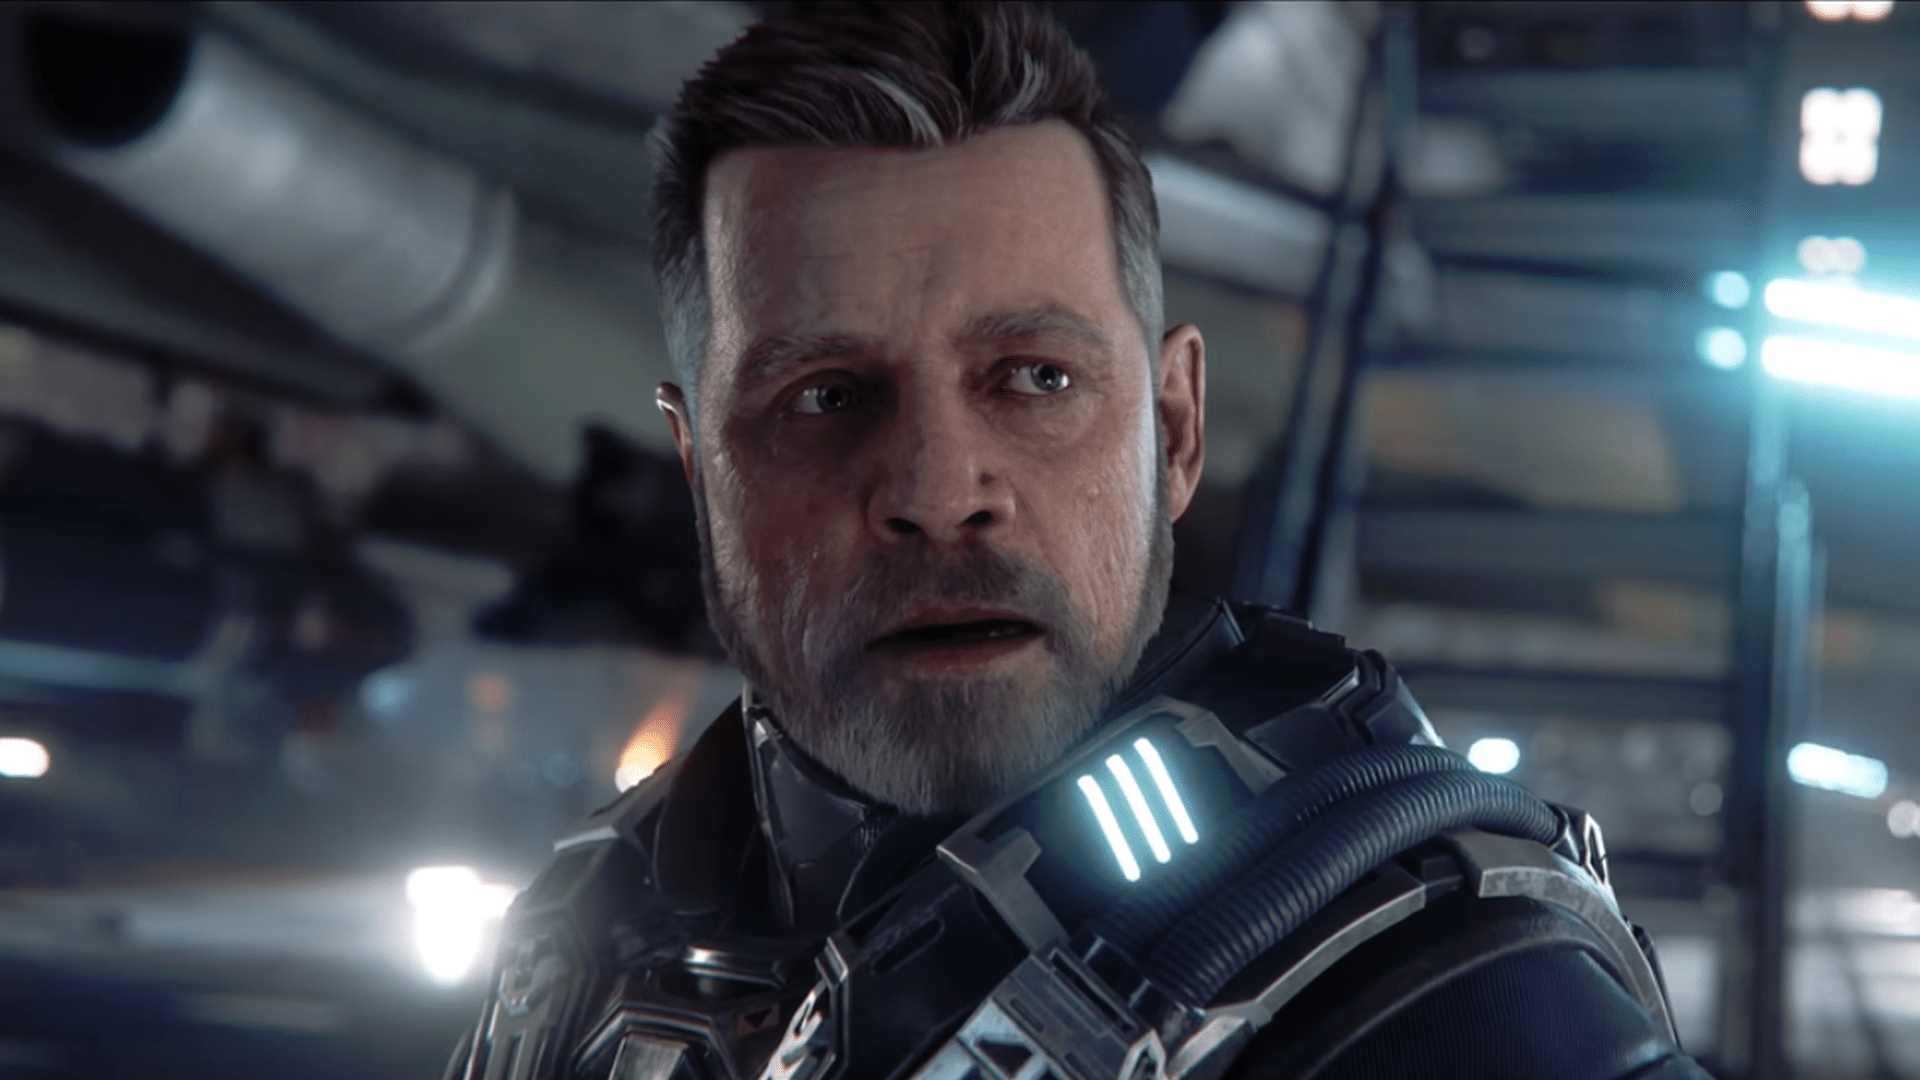 New Roadmap For Squadron 42 Coming Soon According to CIG